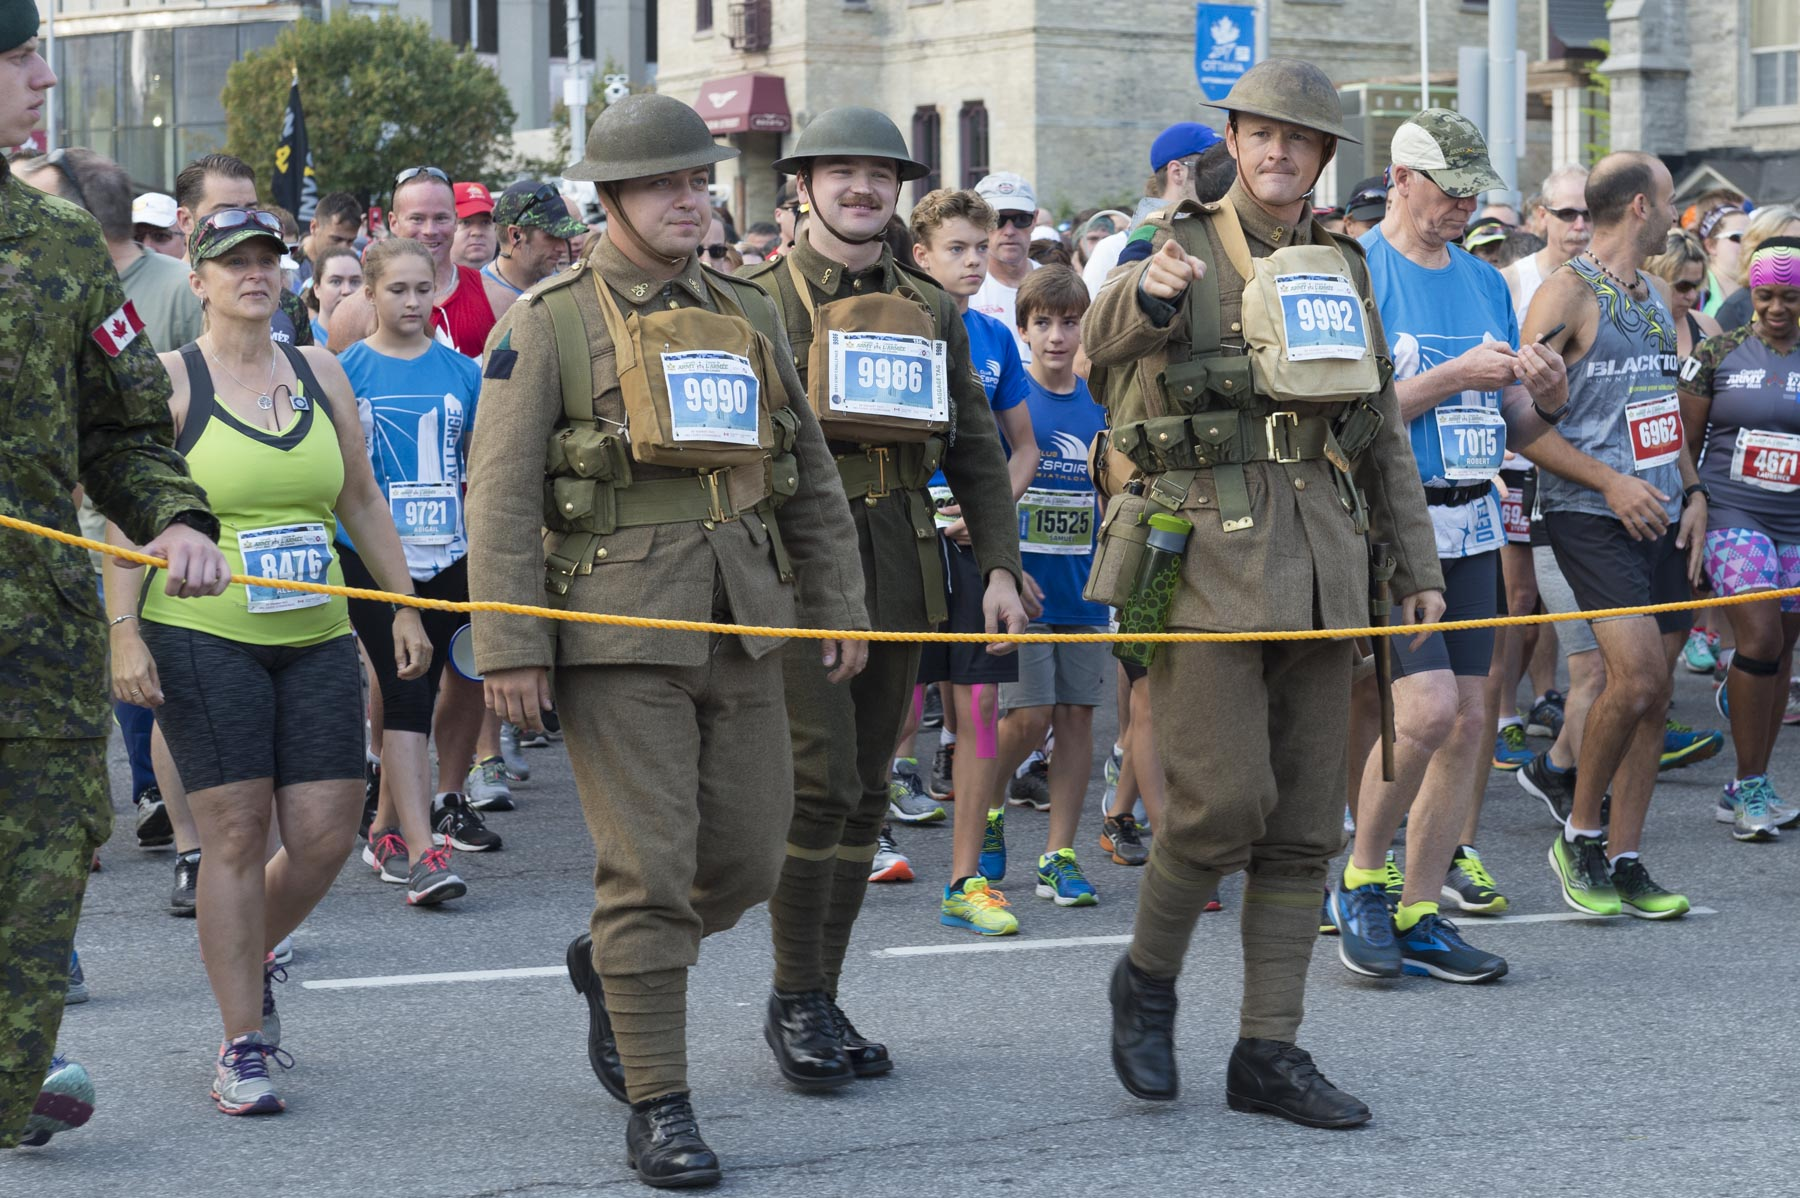 The Canada Army Run celebrates its 10th anniversary in 2017.